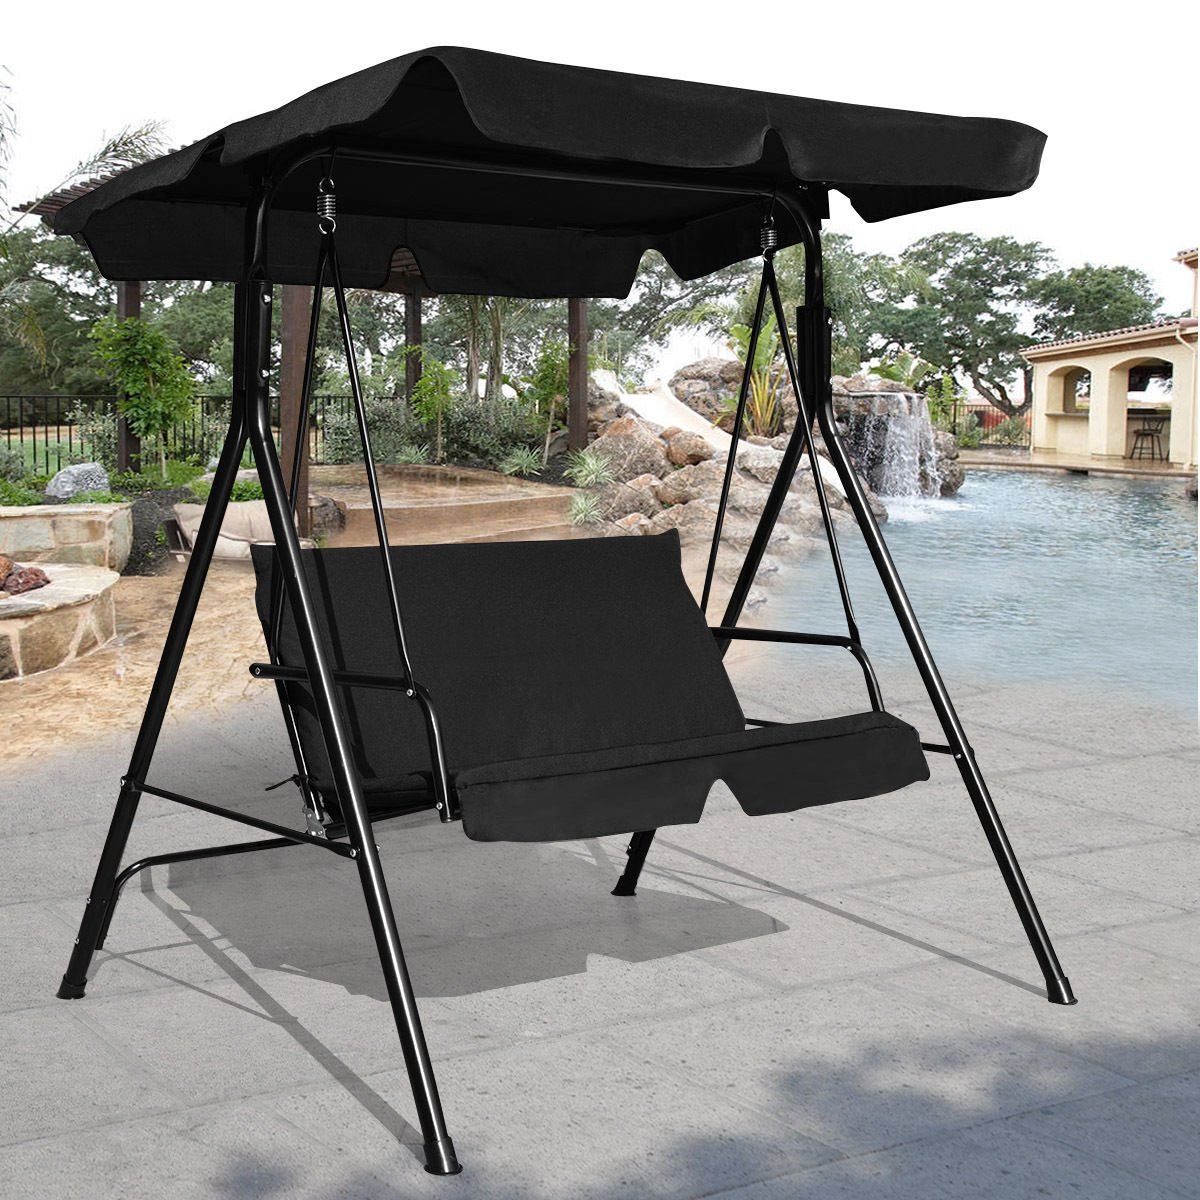 patcharaporn Loveseat Patio Canopy Swing Glider Hammock Cushioned Steel Frame Outdoor Black